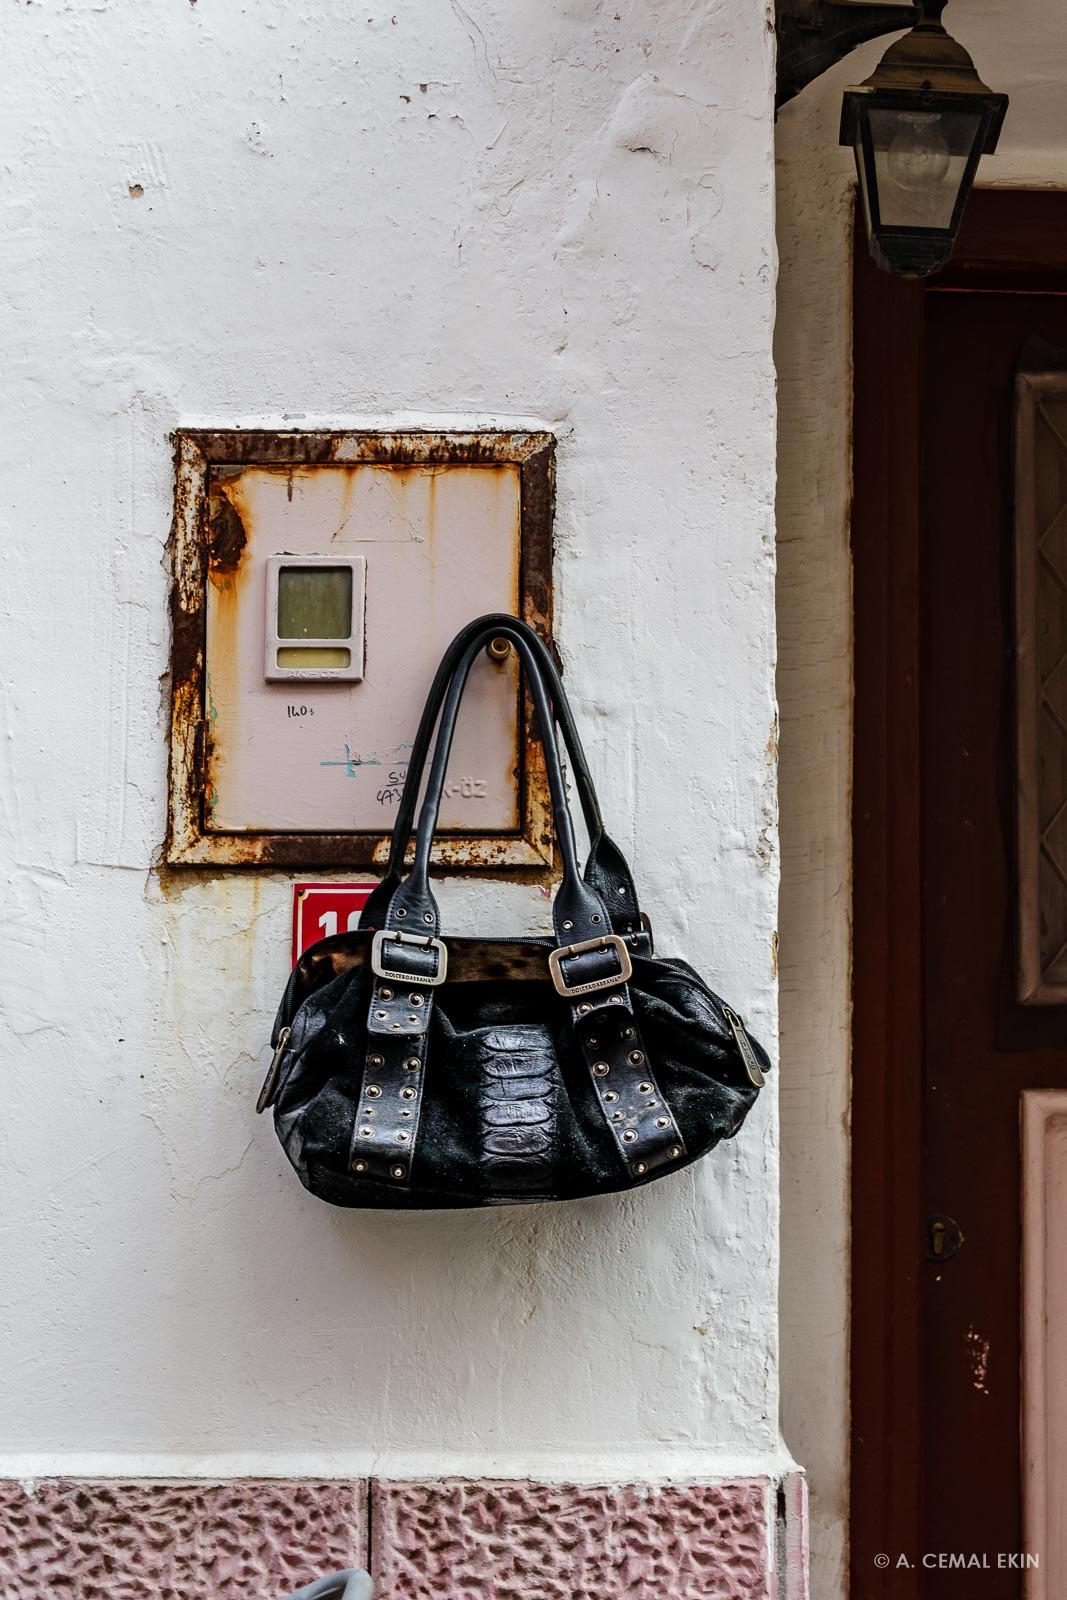 A handbag on the wall?